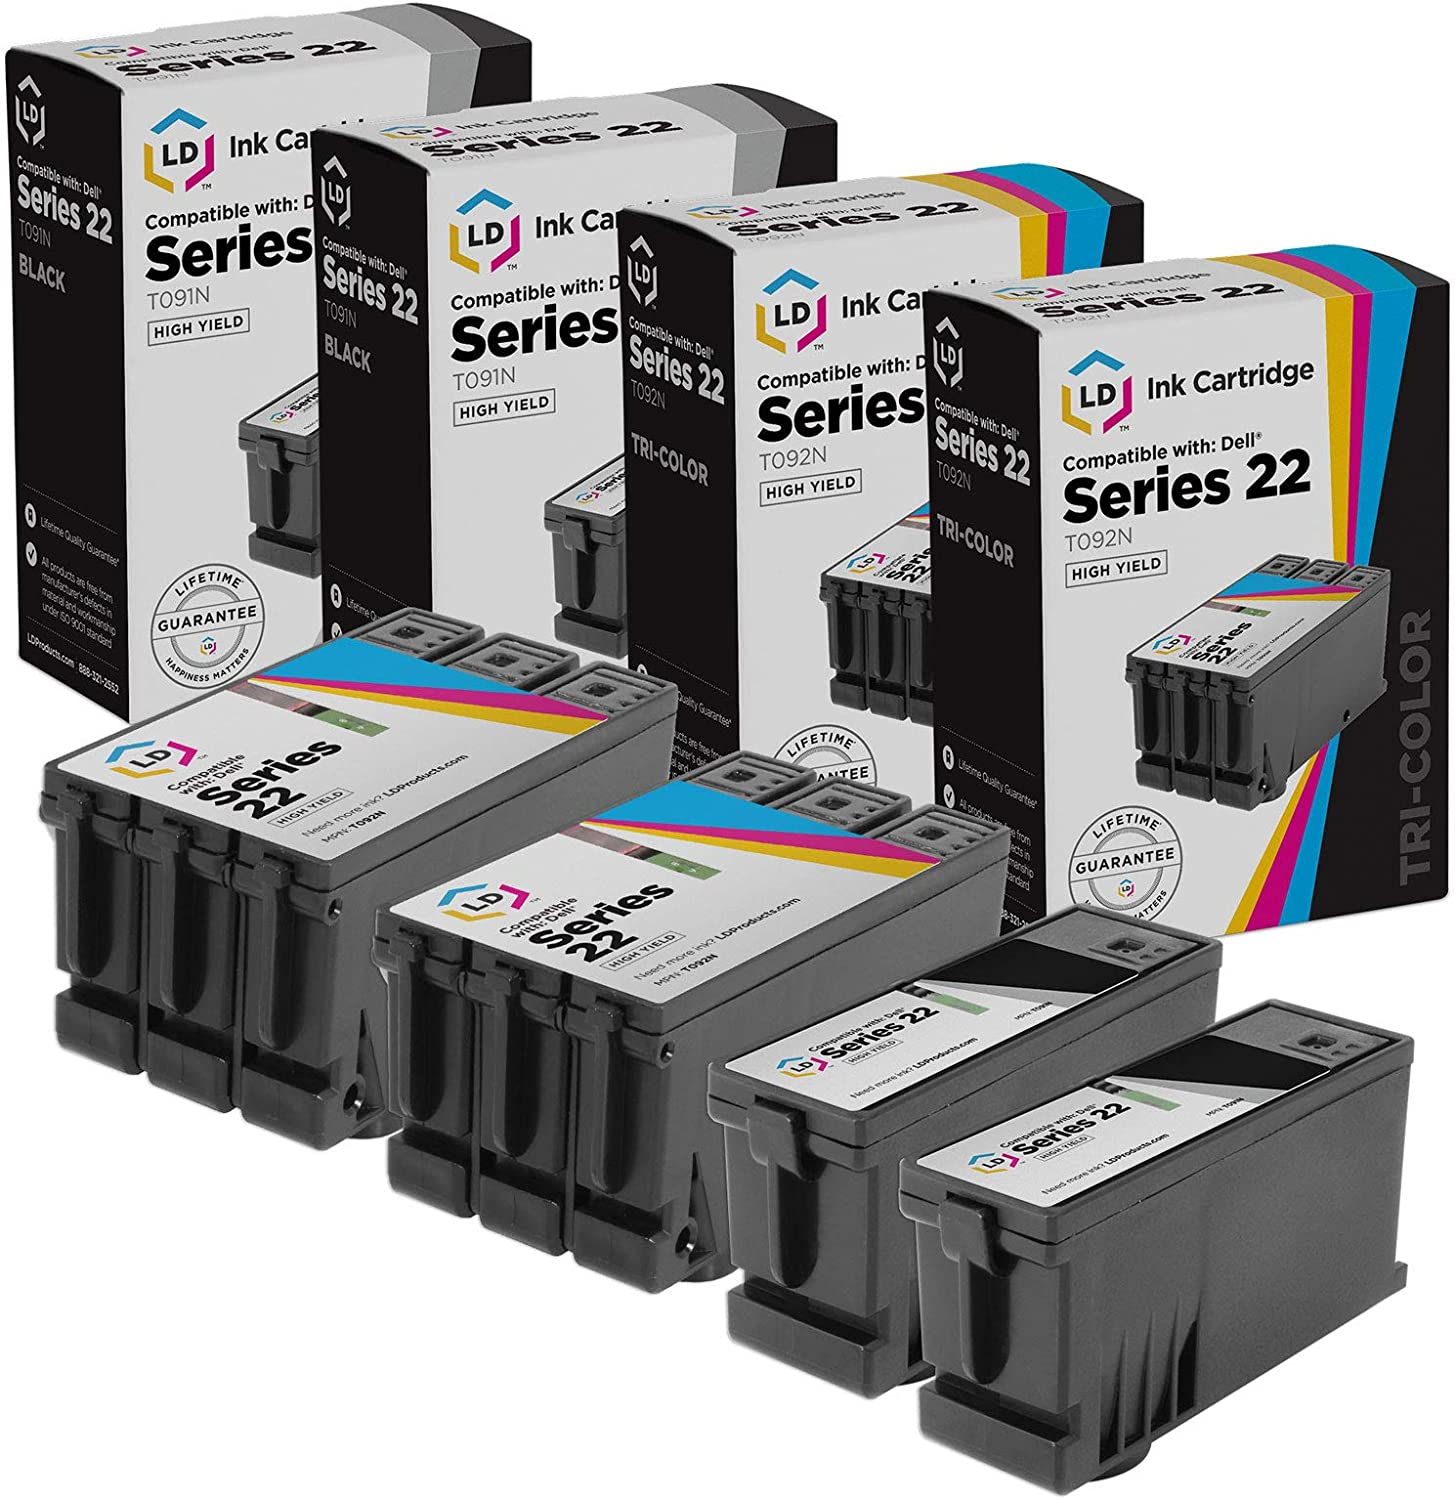 LD Compatible Ink Cartridge Replacement for Dell T091N & T092N Series 22 High Yield (2 Black, 2 Color, 4-Pack)